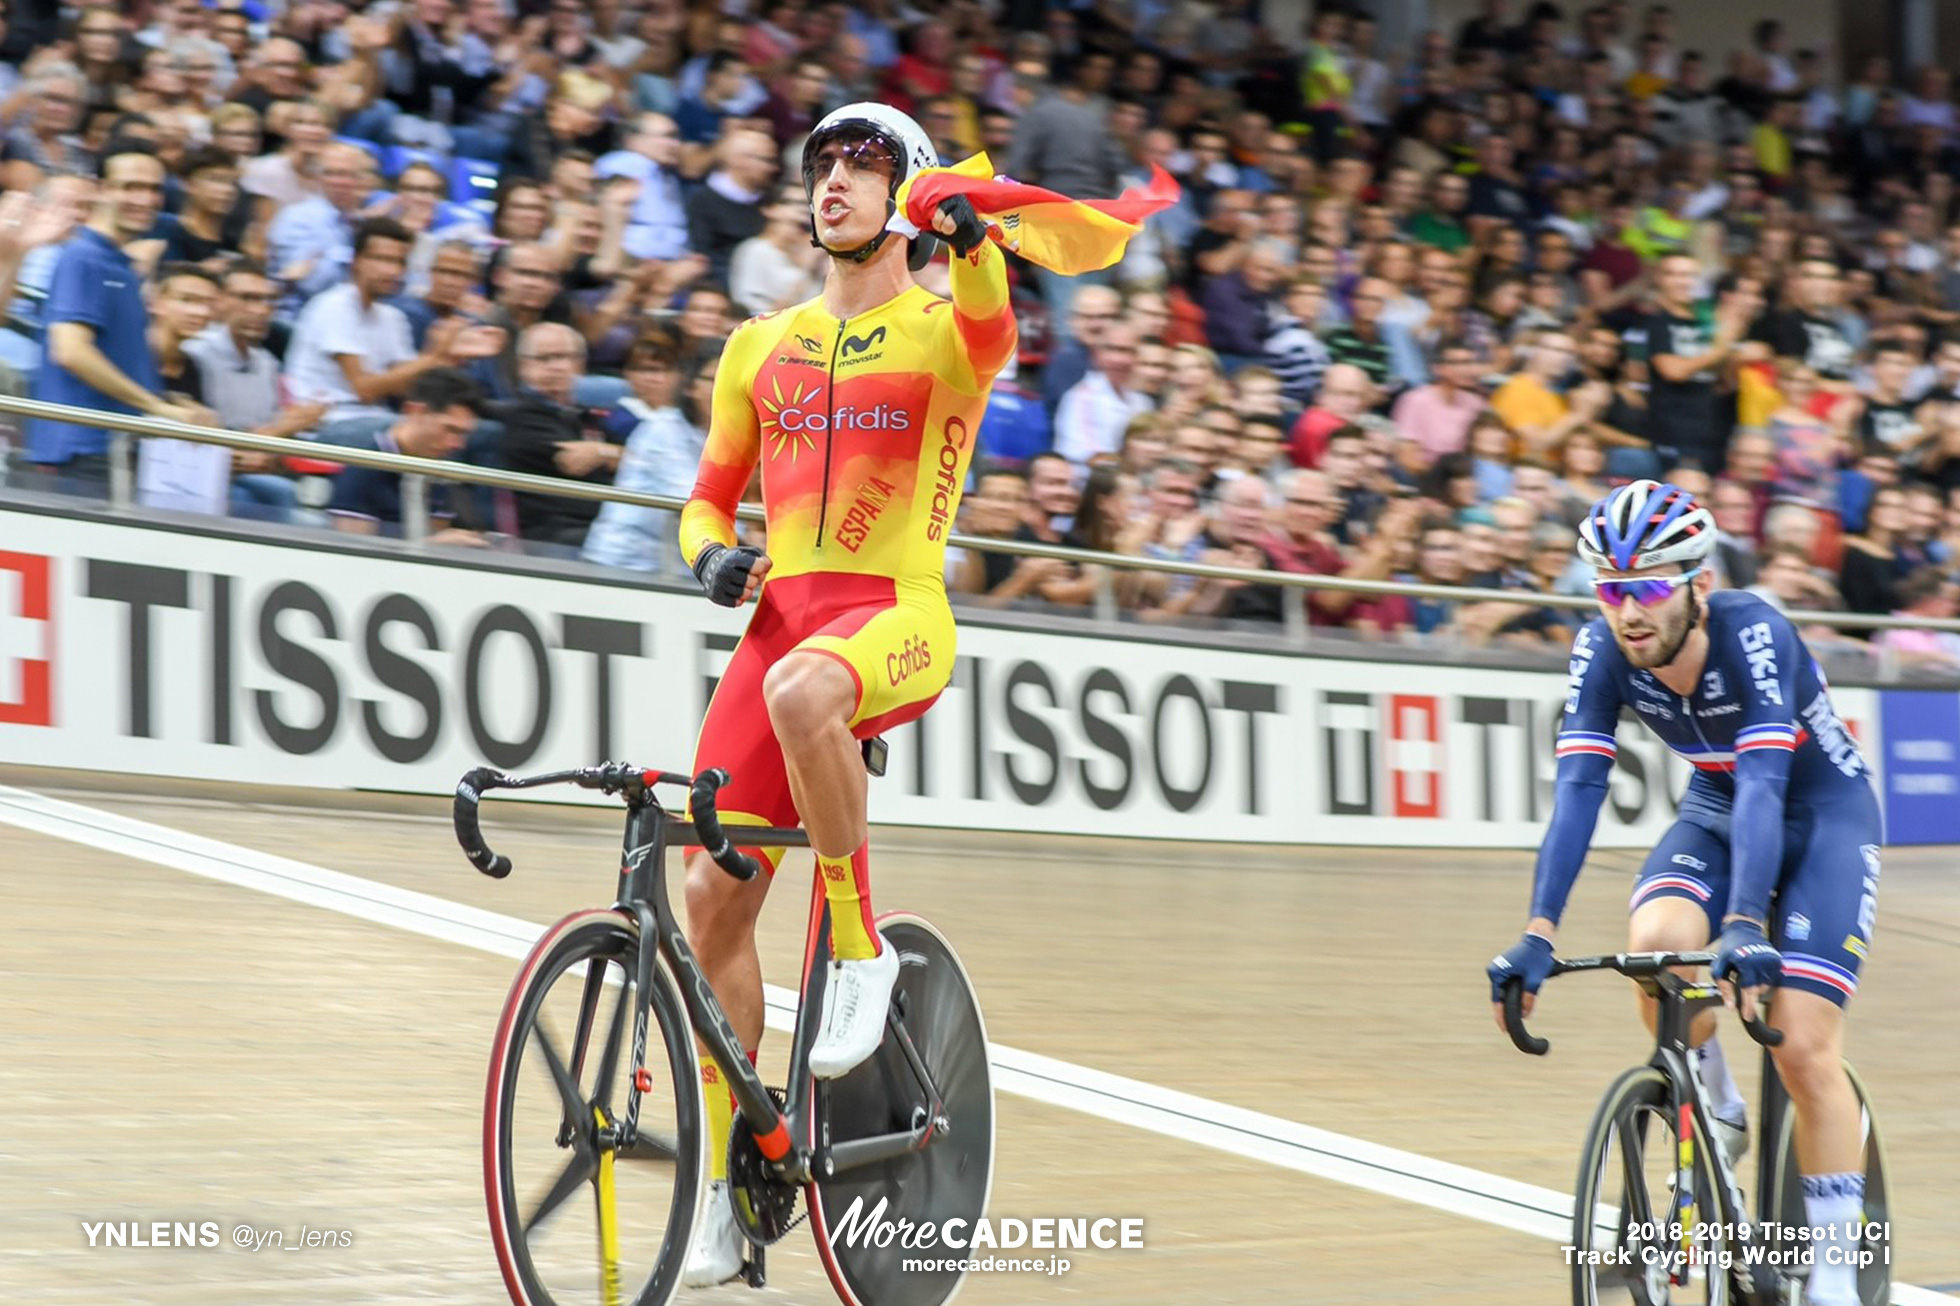 2018-2019 TRACK CYCLING WORLD CUP I Men's Omnium